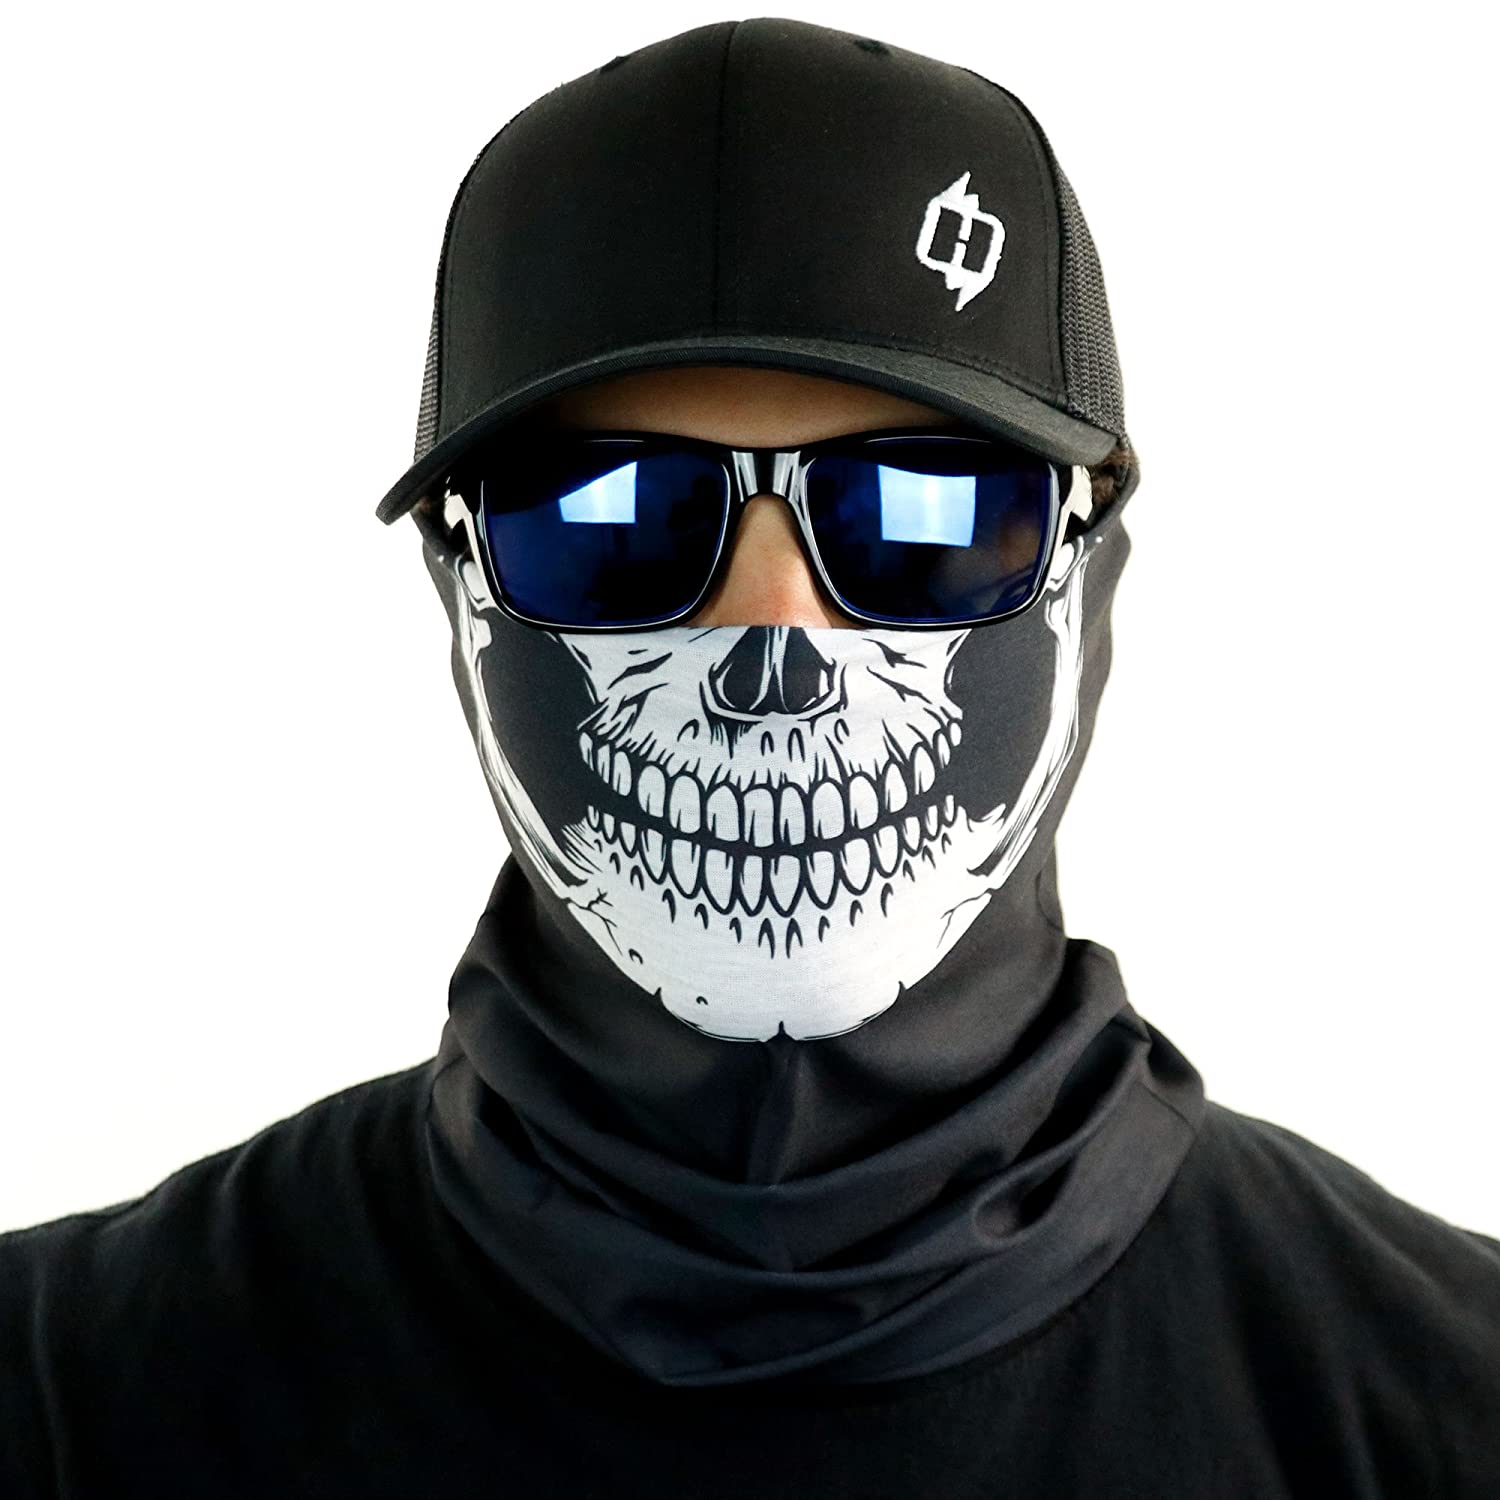 Hoo-Rag Skull Tubular Bandana With Skeleton Design Works In Hot And Cold HRB04